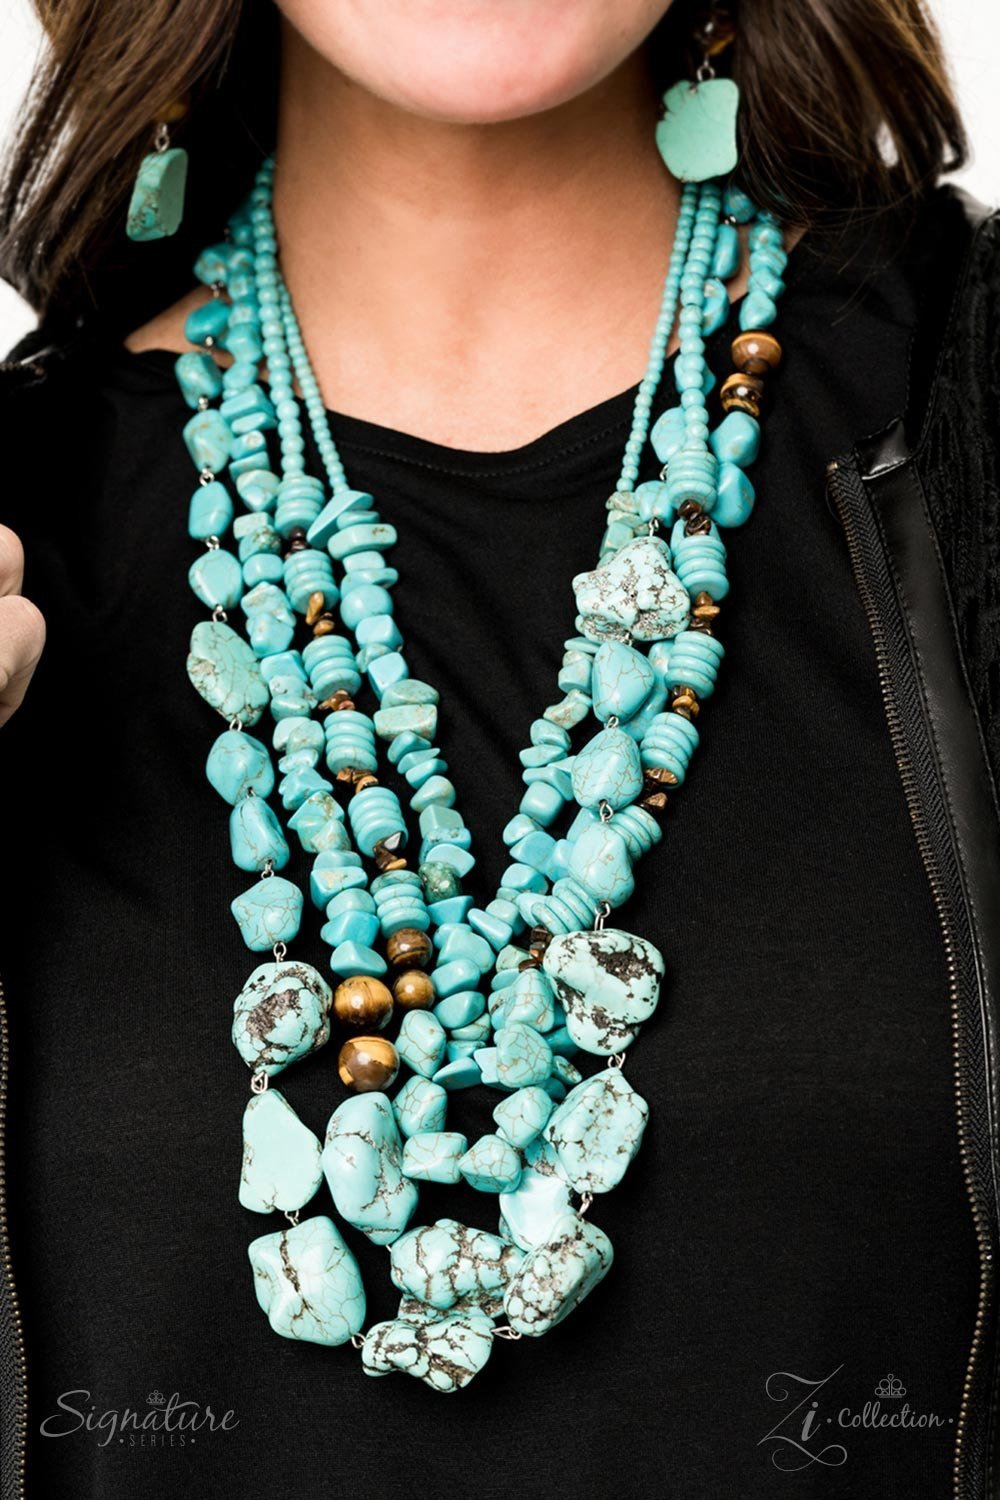 The Monica - Paparazzi Zi Collection Necklace